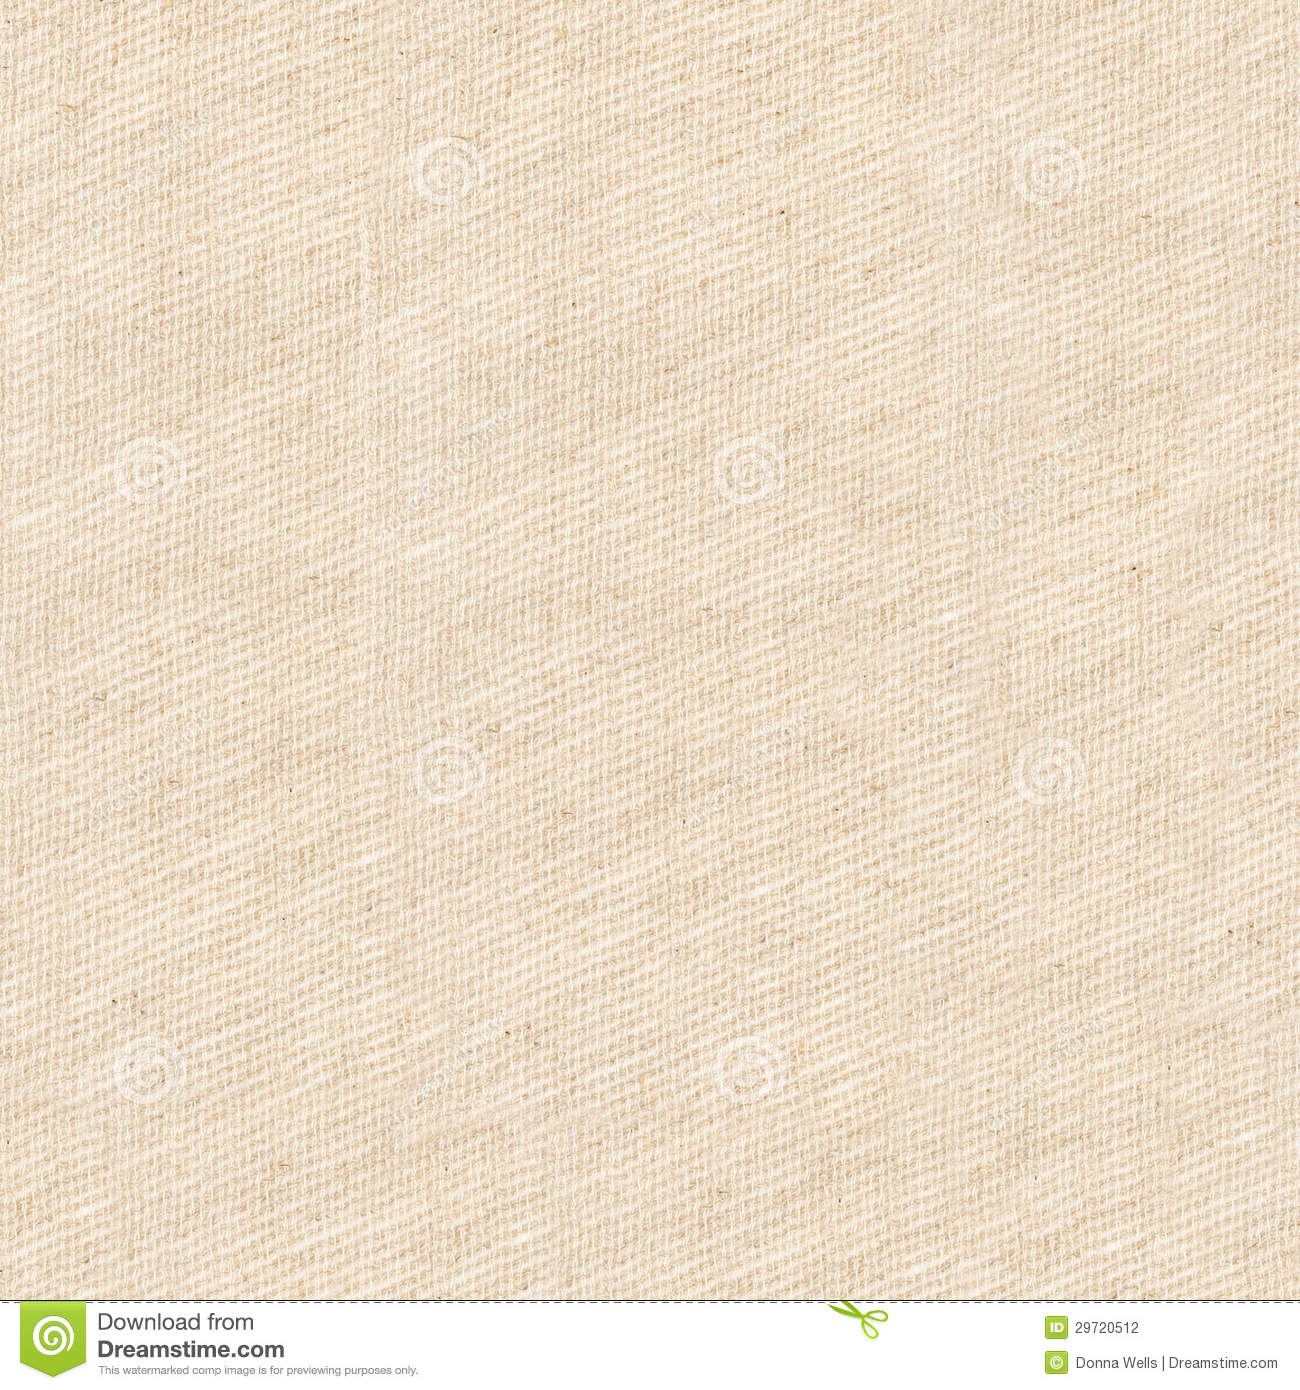 Free Fall Foliage Wallpaper Ivory Linen Fabric Background Stock Photo Image Of Linen